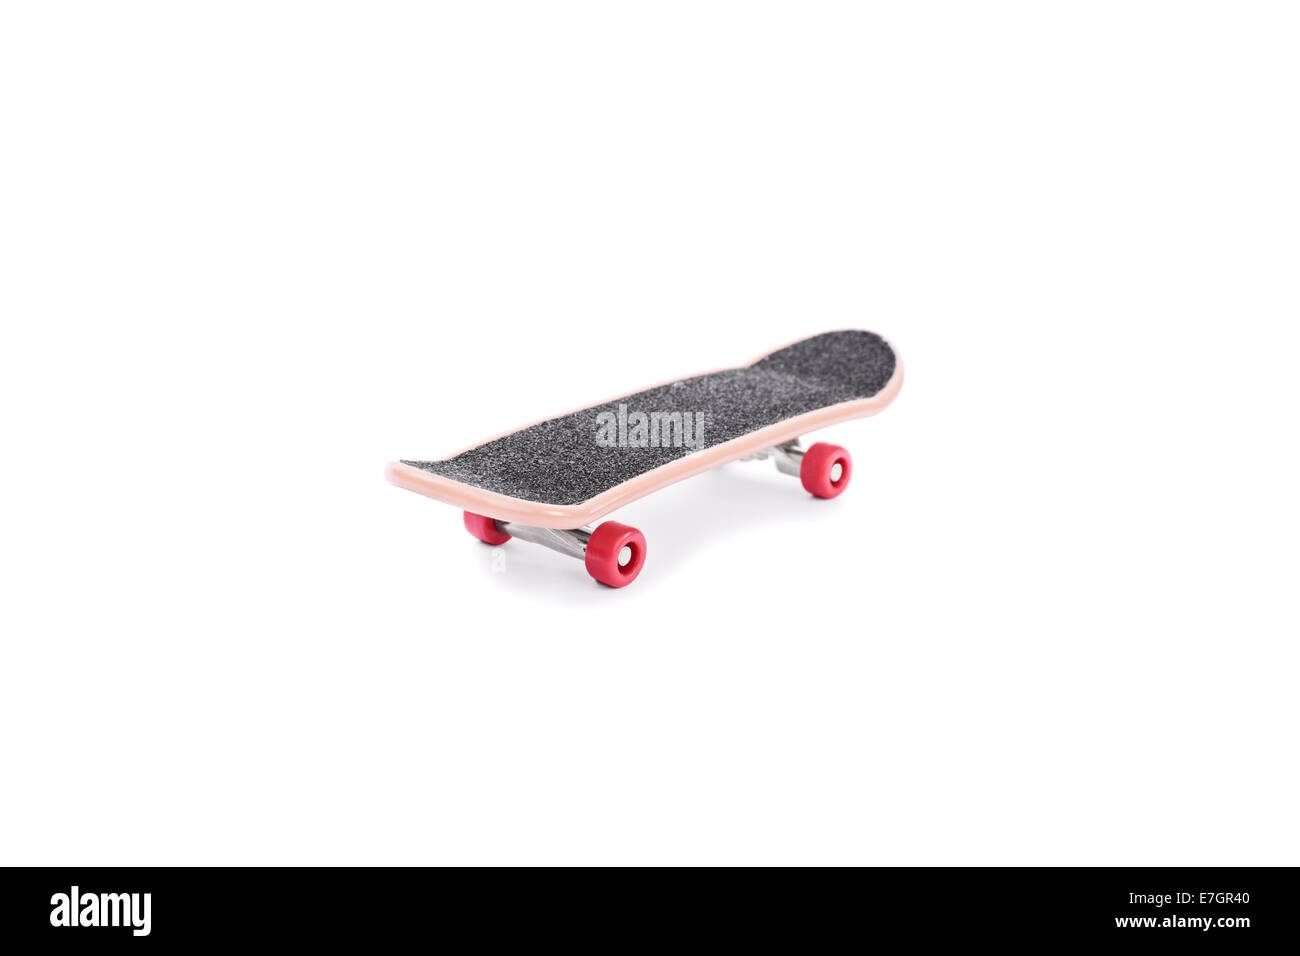 Close-up shot of a toy skate isolated on white background - Stock Image